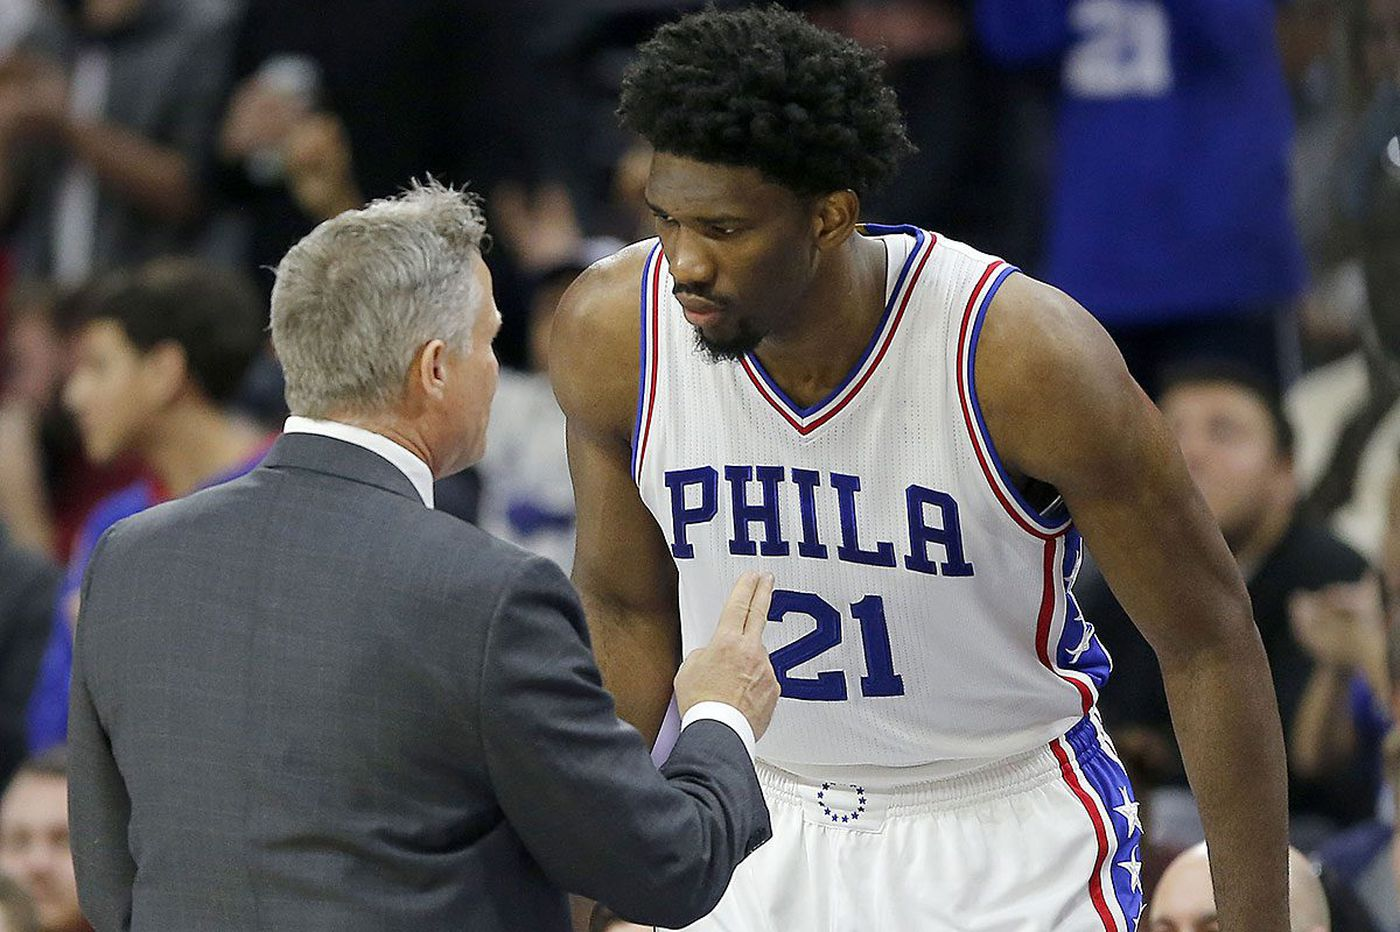 Sixers star Joel Embiid fatigued and frustrated